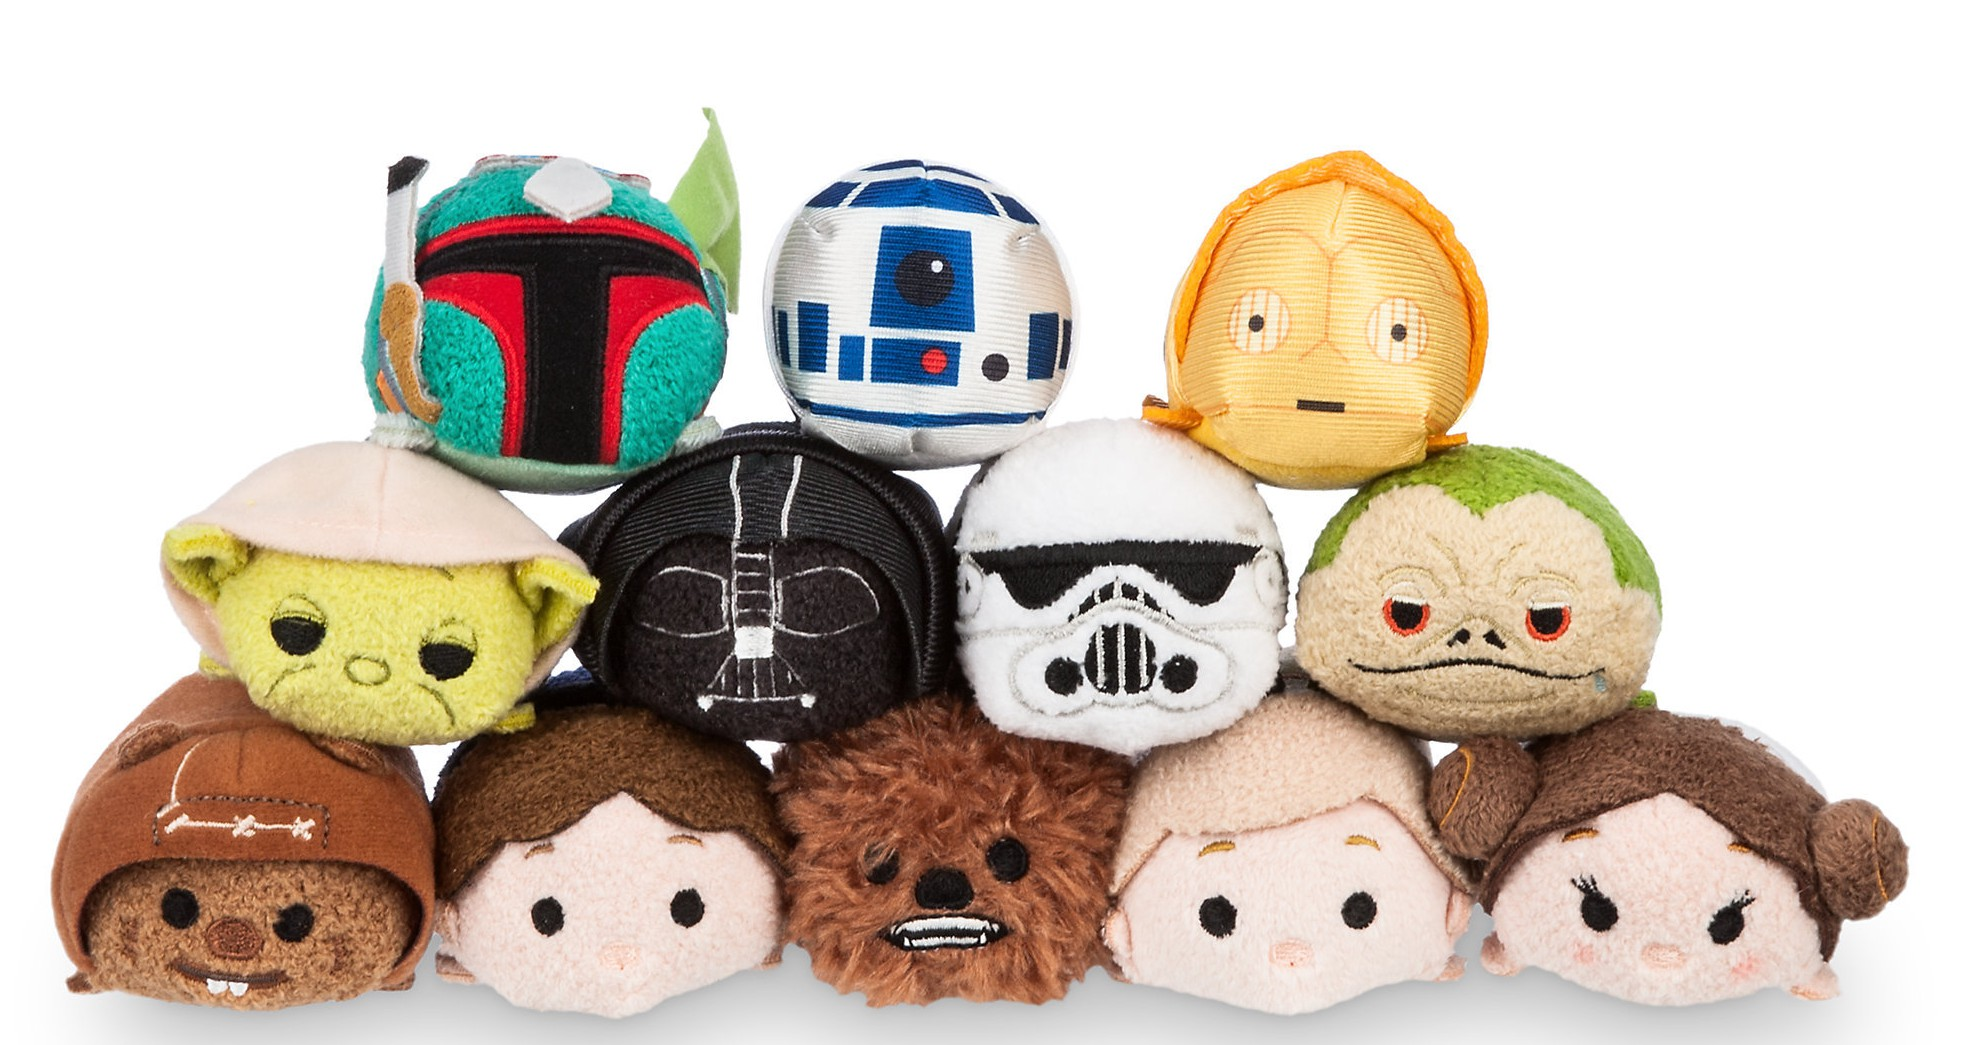 New Items at DisneyStore.com for February 16, 2016